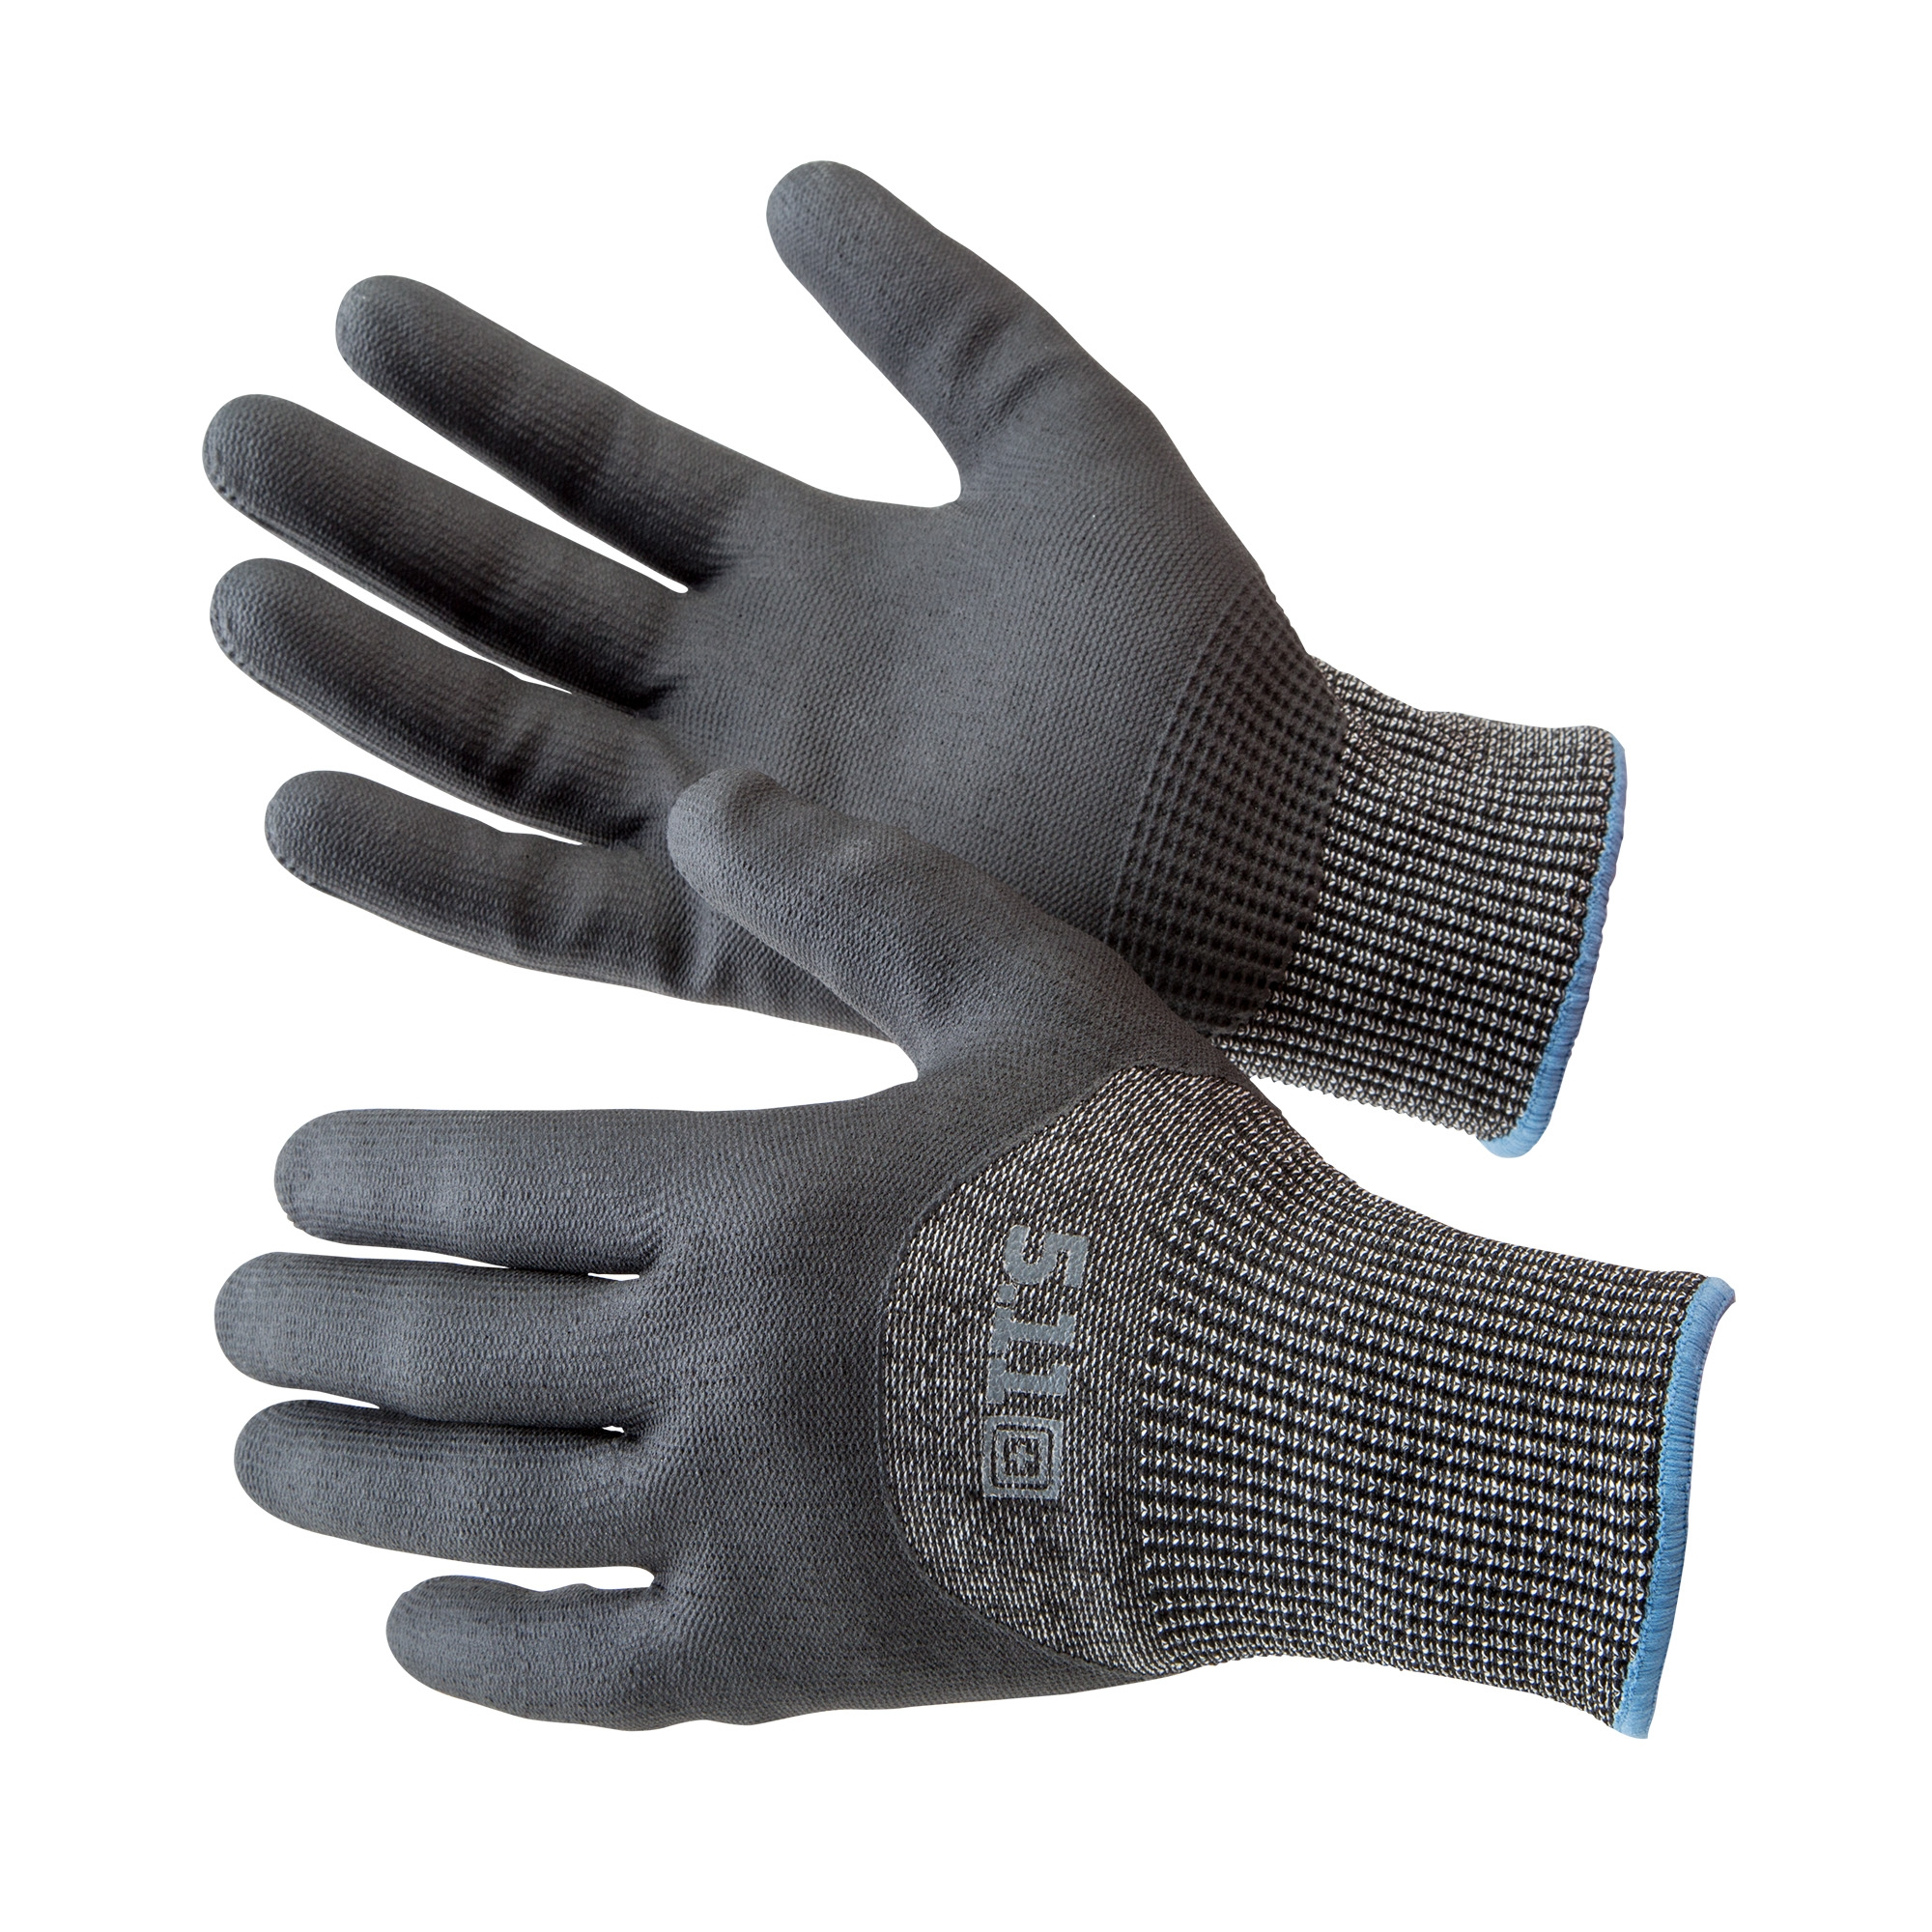 5.11 Tactical Men's Tac-CR Cut Resistant Glove (Black)